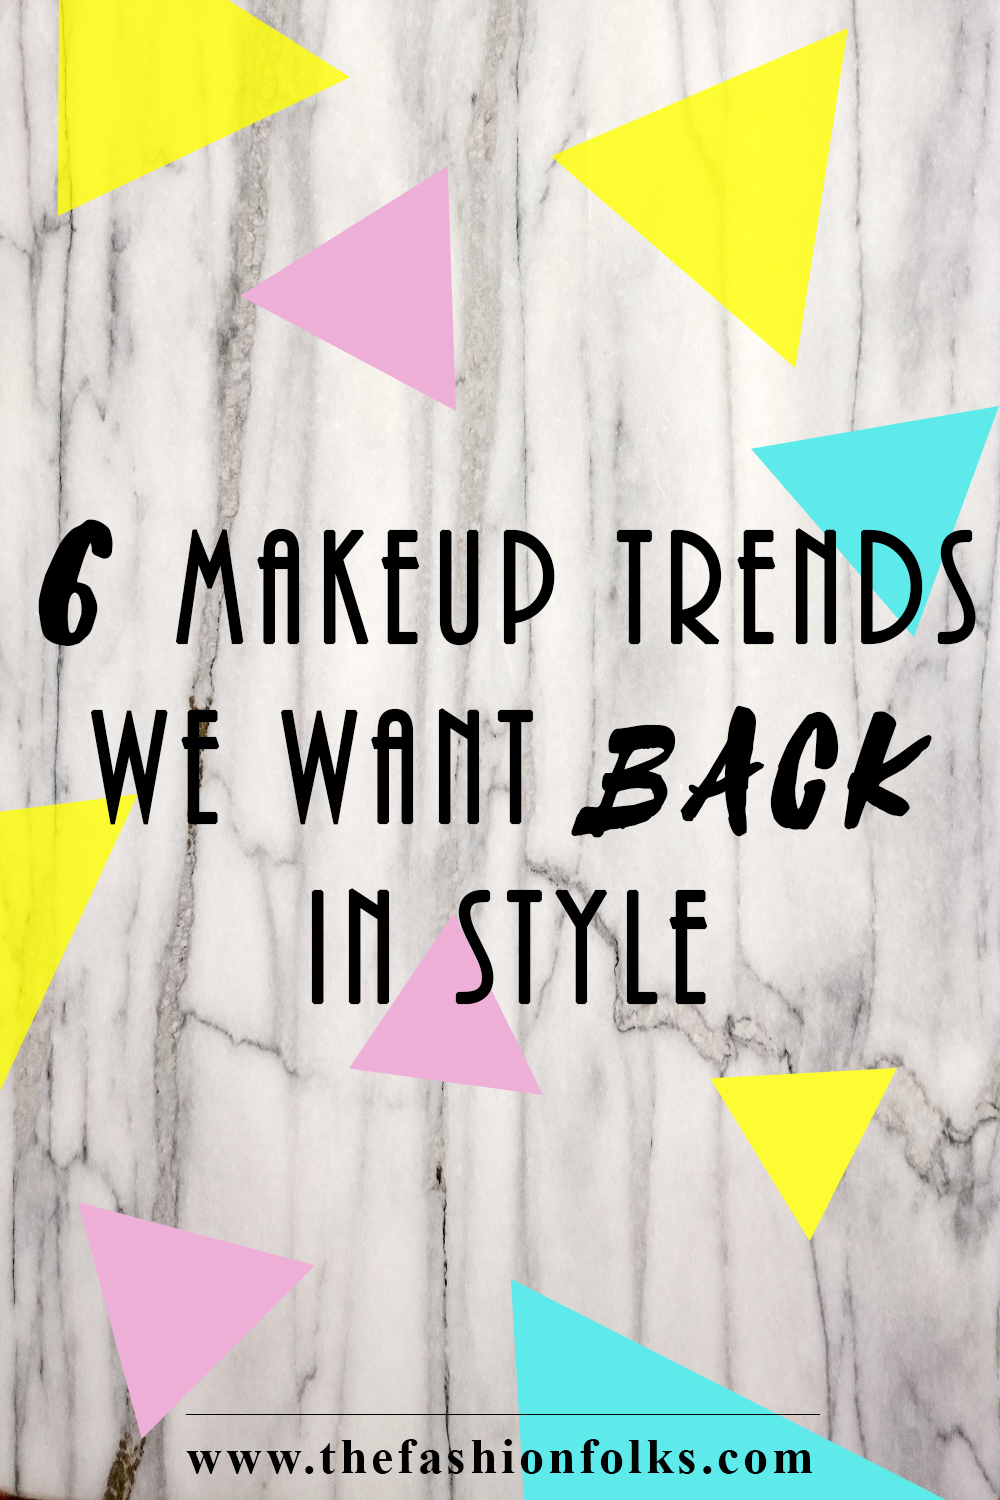 Makeup Trends We Want Back | The Fashion Folks